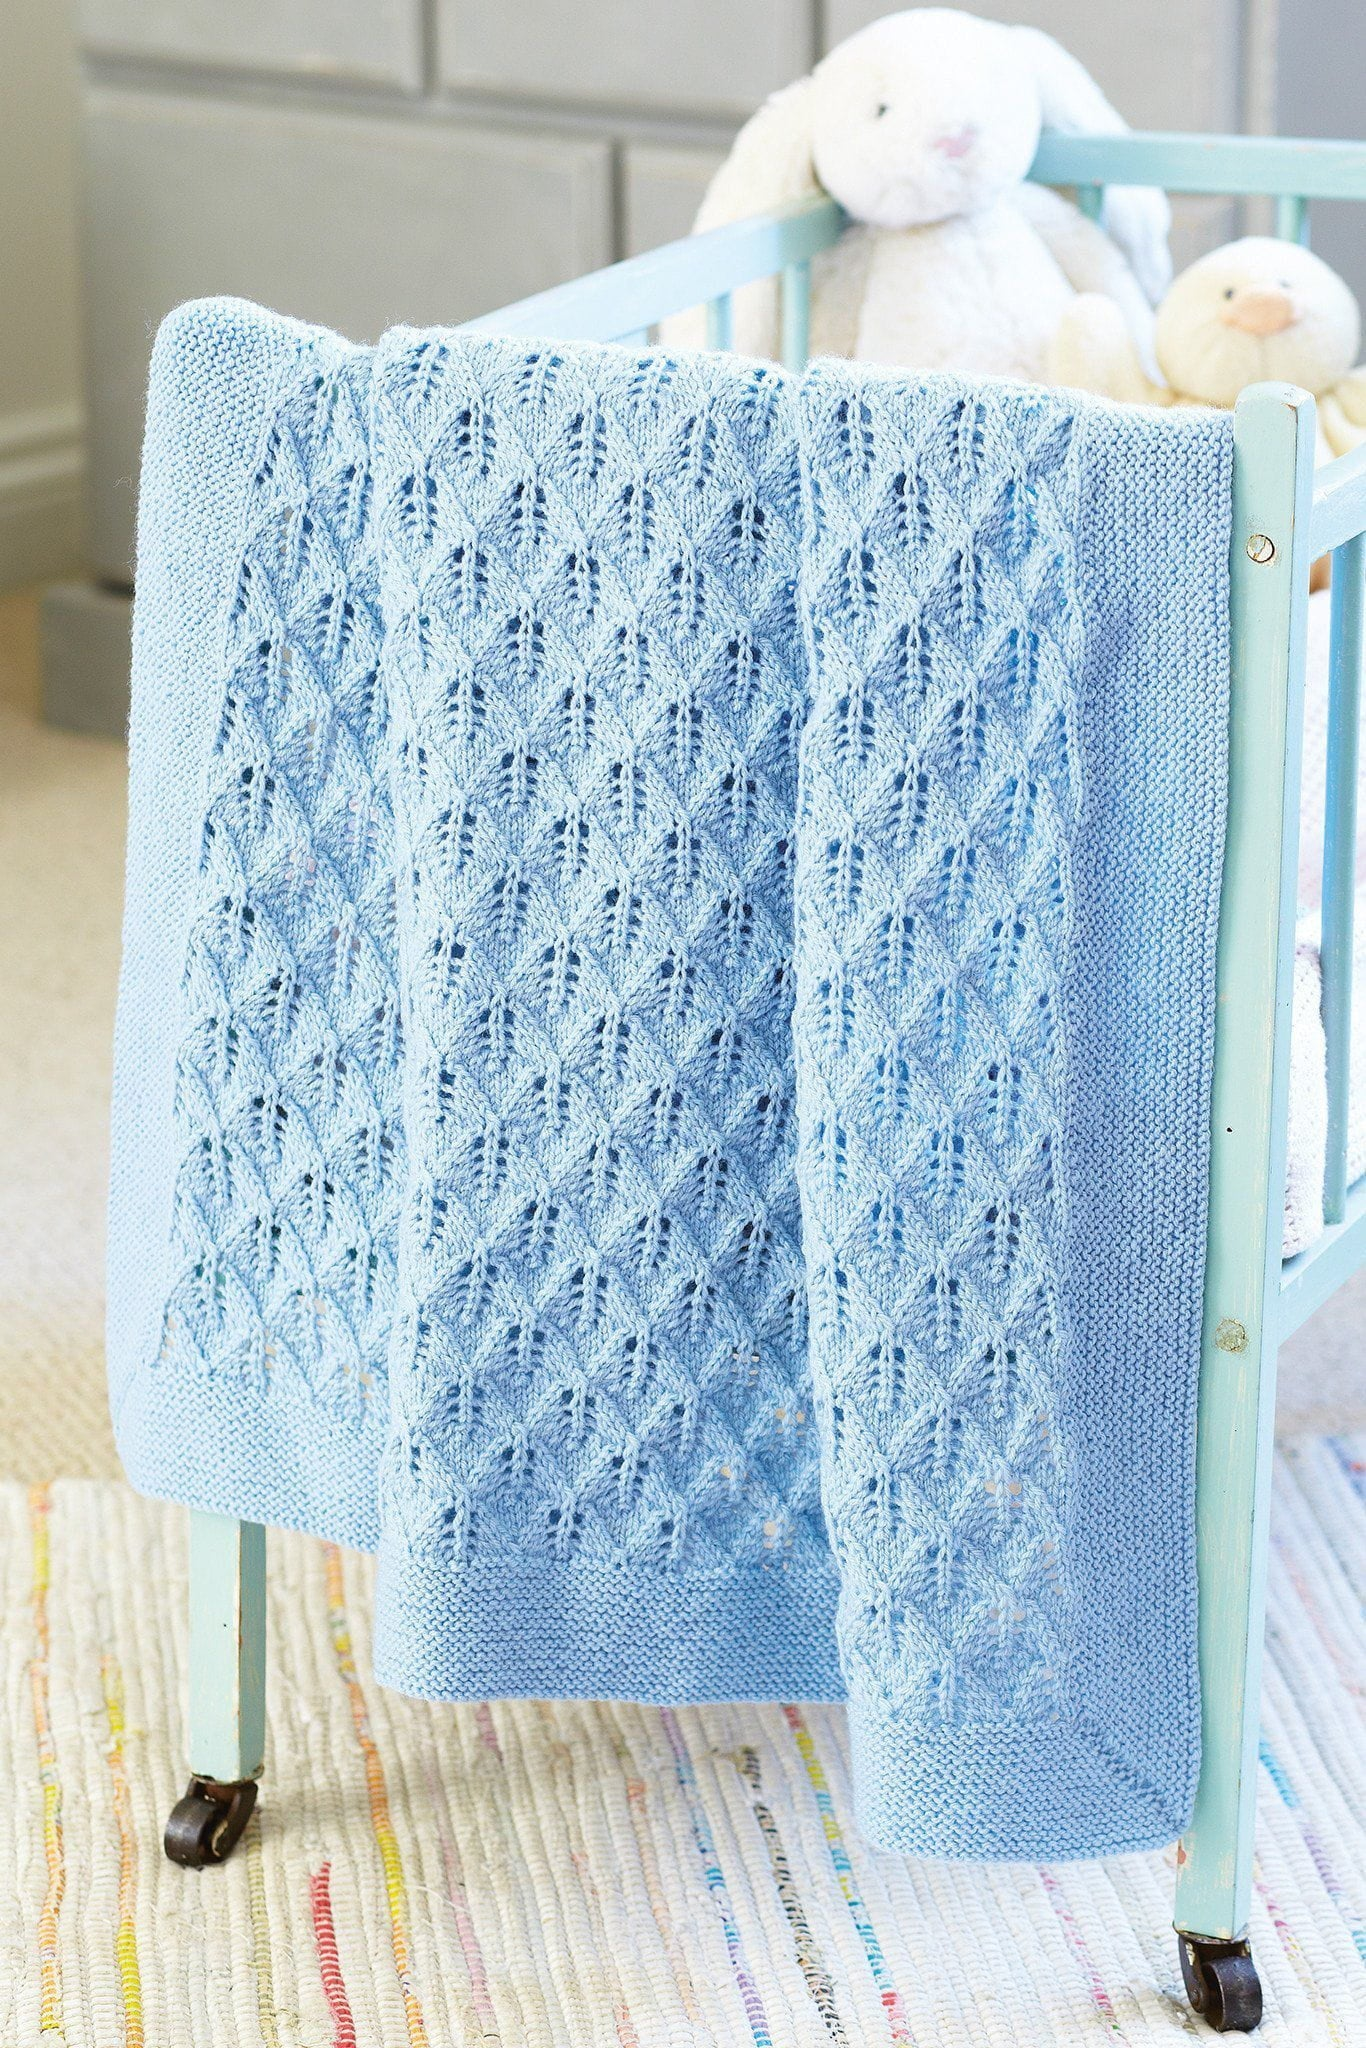 Vintage Baby Cot Blanket Knitting Pattern – The Knitting Network